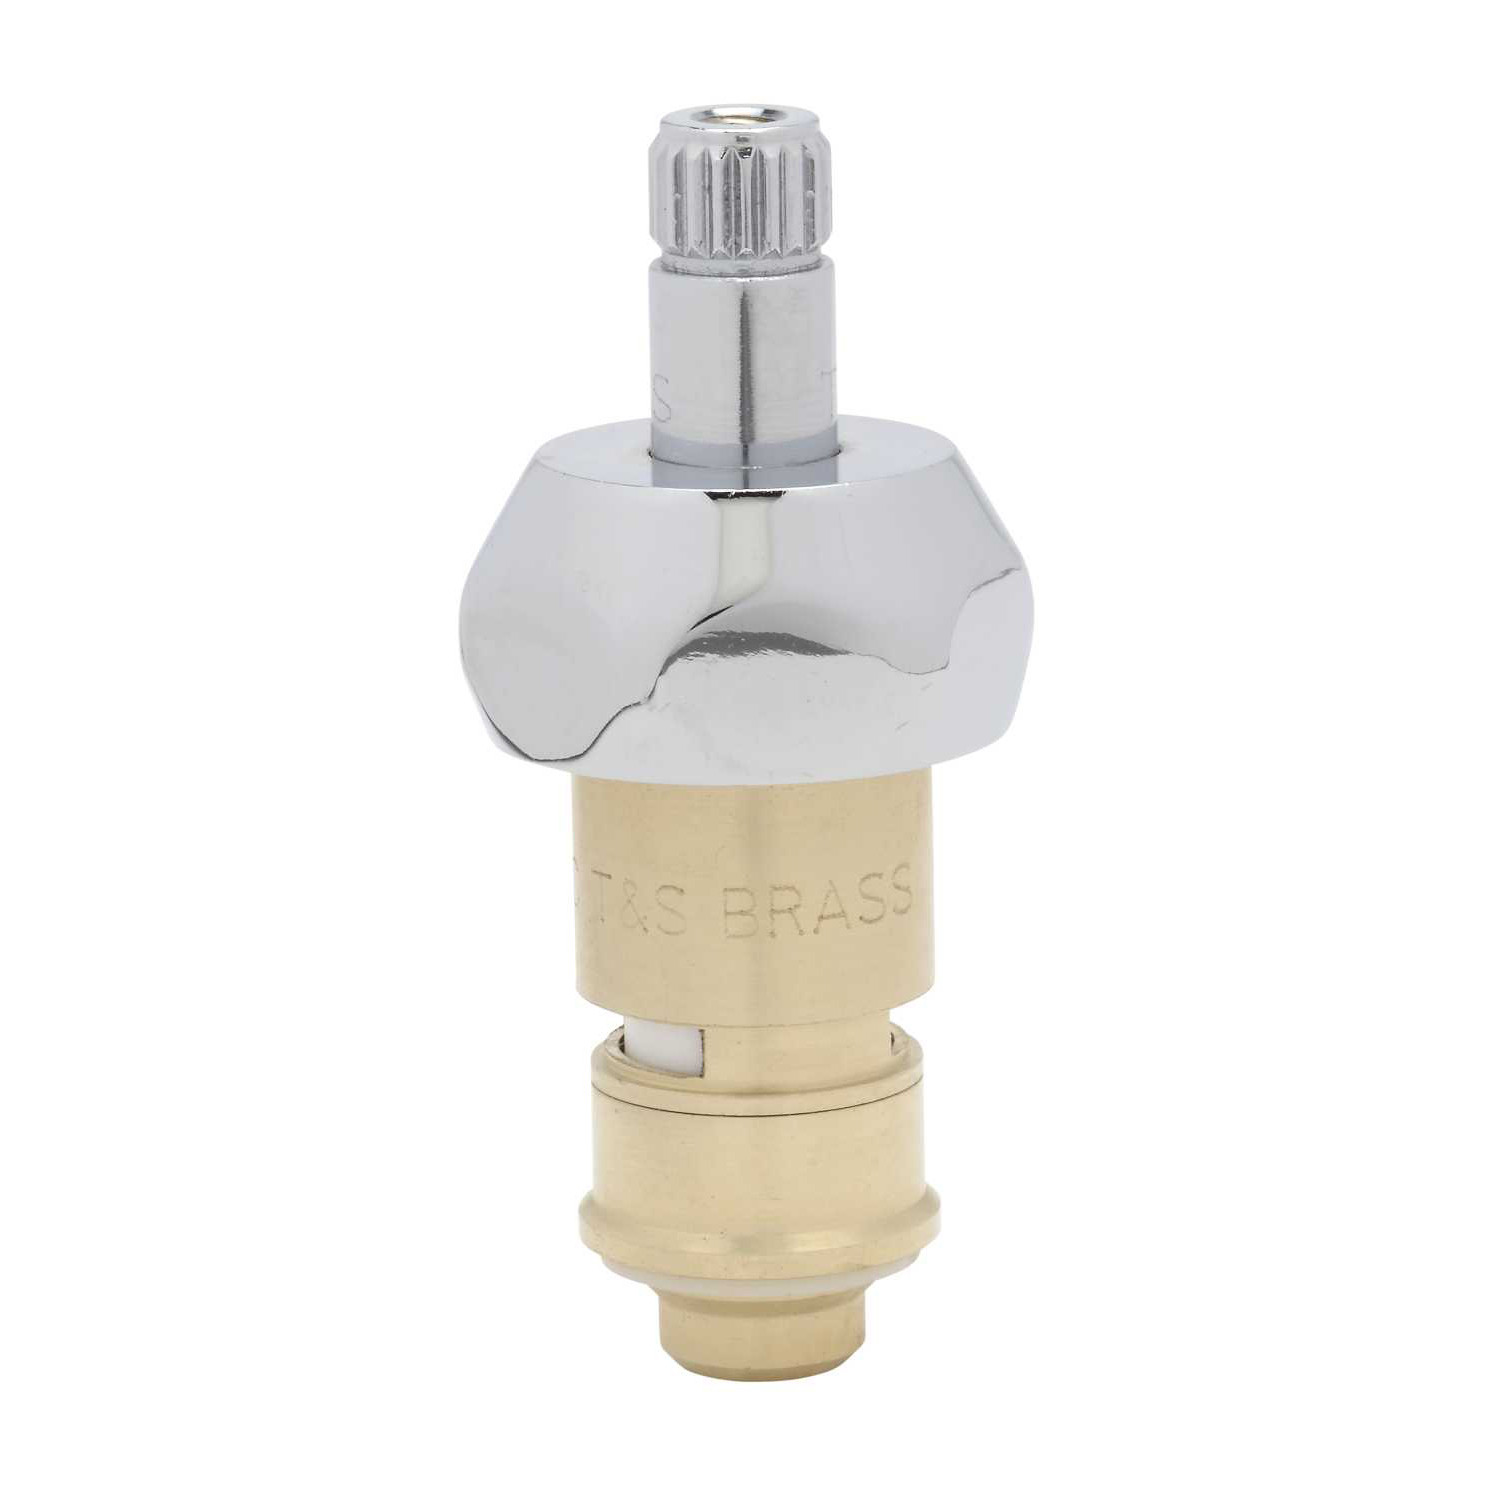 brass graphics faucets s tamps amp photos i com faucet t beautiful of service manual sink sill elegant b